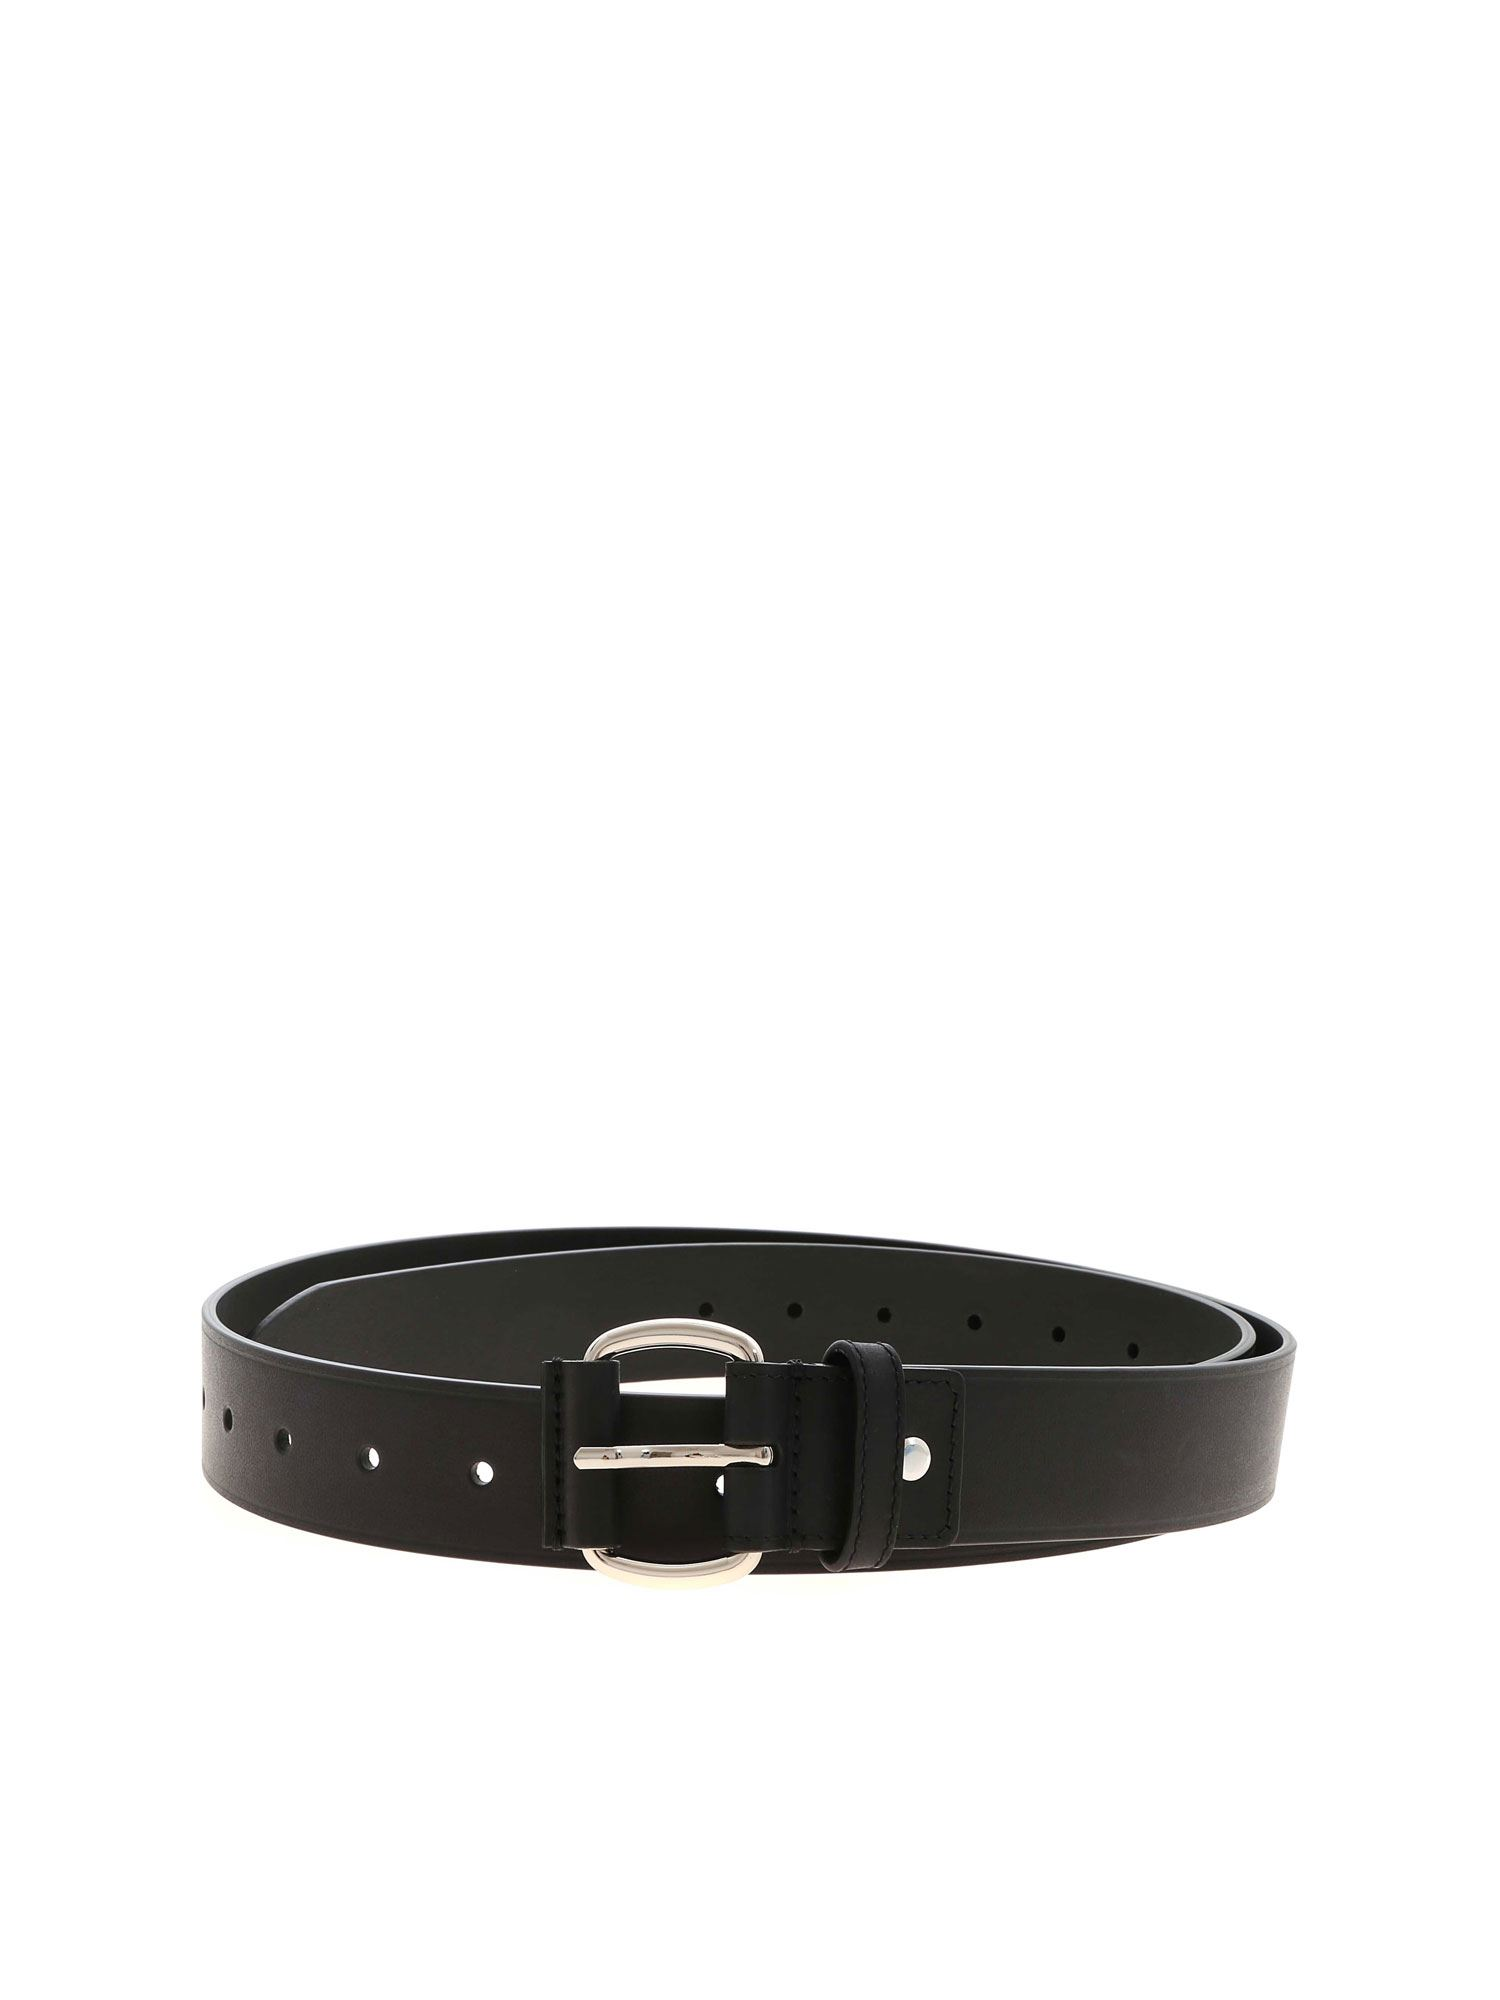 Vivienne Westwood ROLLER BELT IN BLACK